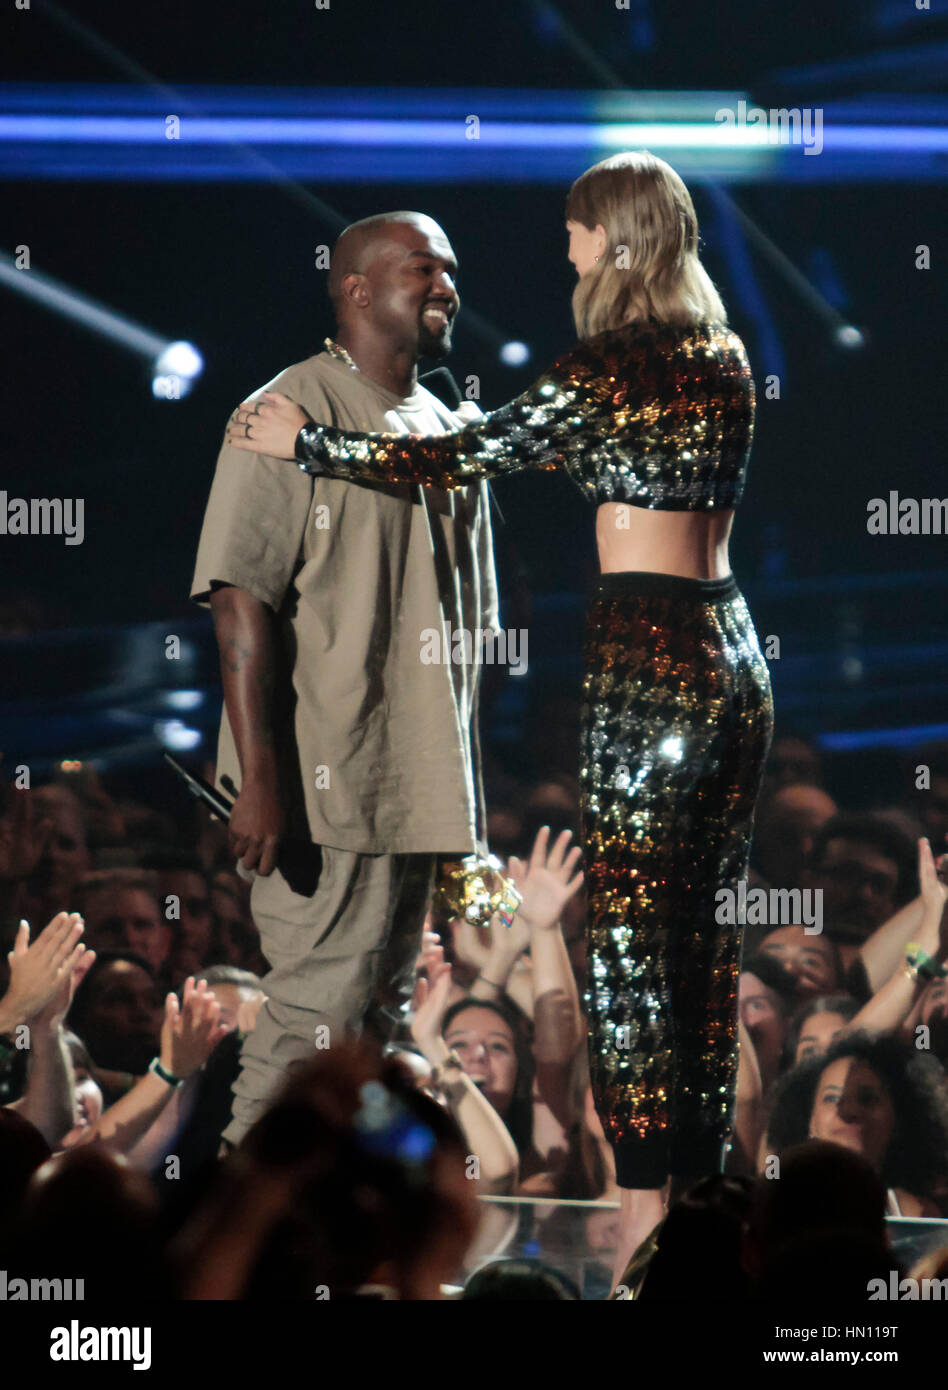 Rapper Kanye West and Taylor Swift hug at the MTV Video Music Awards on August 30, 2015 in Los Angeles. Photo by - Stock Image